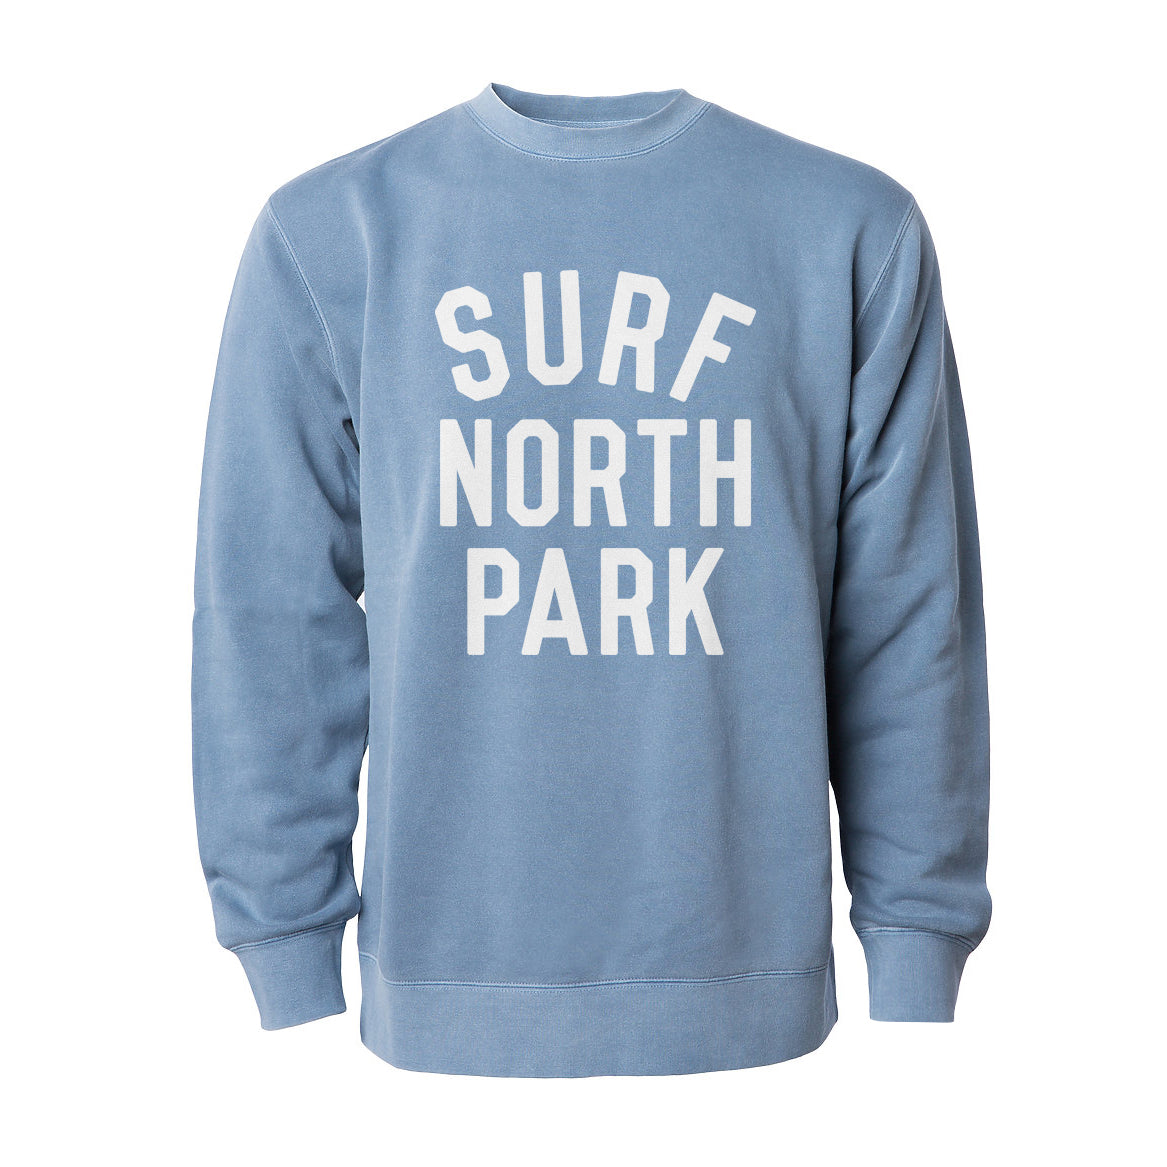 Aloha Beach Club - Surf North Park Faded Blue Sweatshirt - Aloha Beach Club